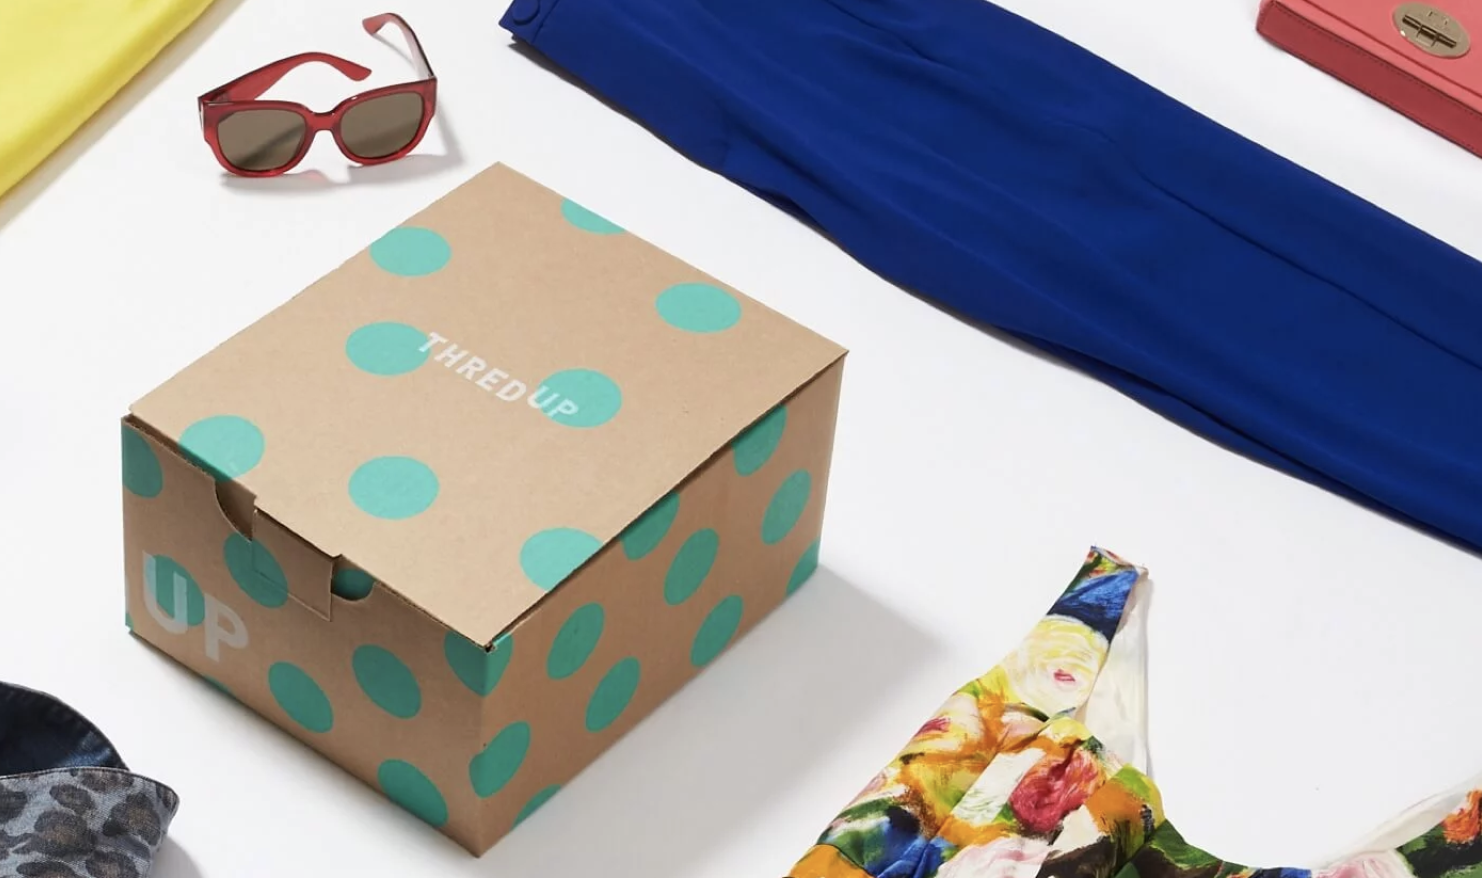 thredUP Goody Box filled with floral sleeveless top, navy blue pants, and dark red shades